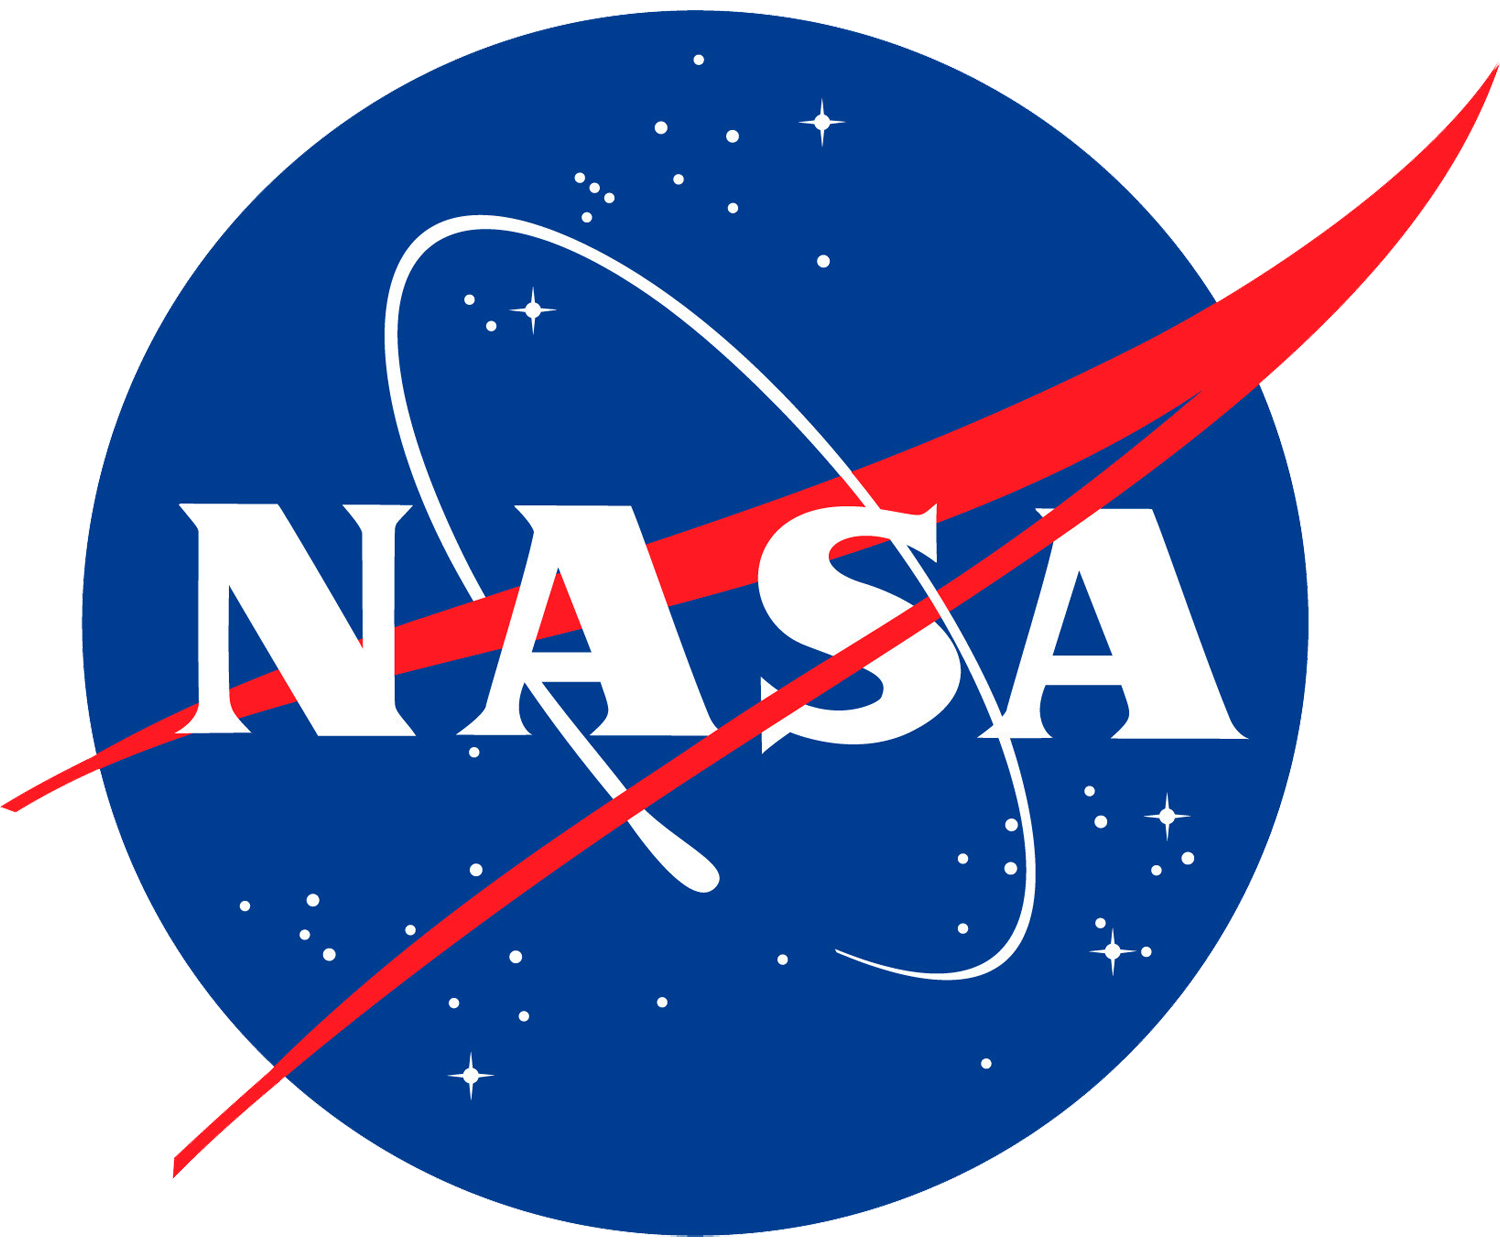 Nasa transparent background pics. Galaxy clipart space logo